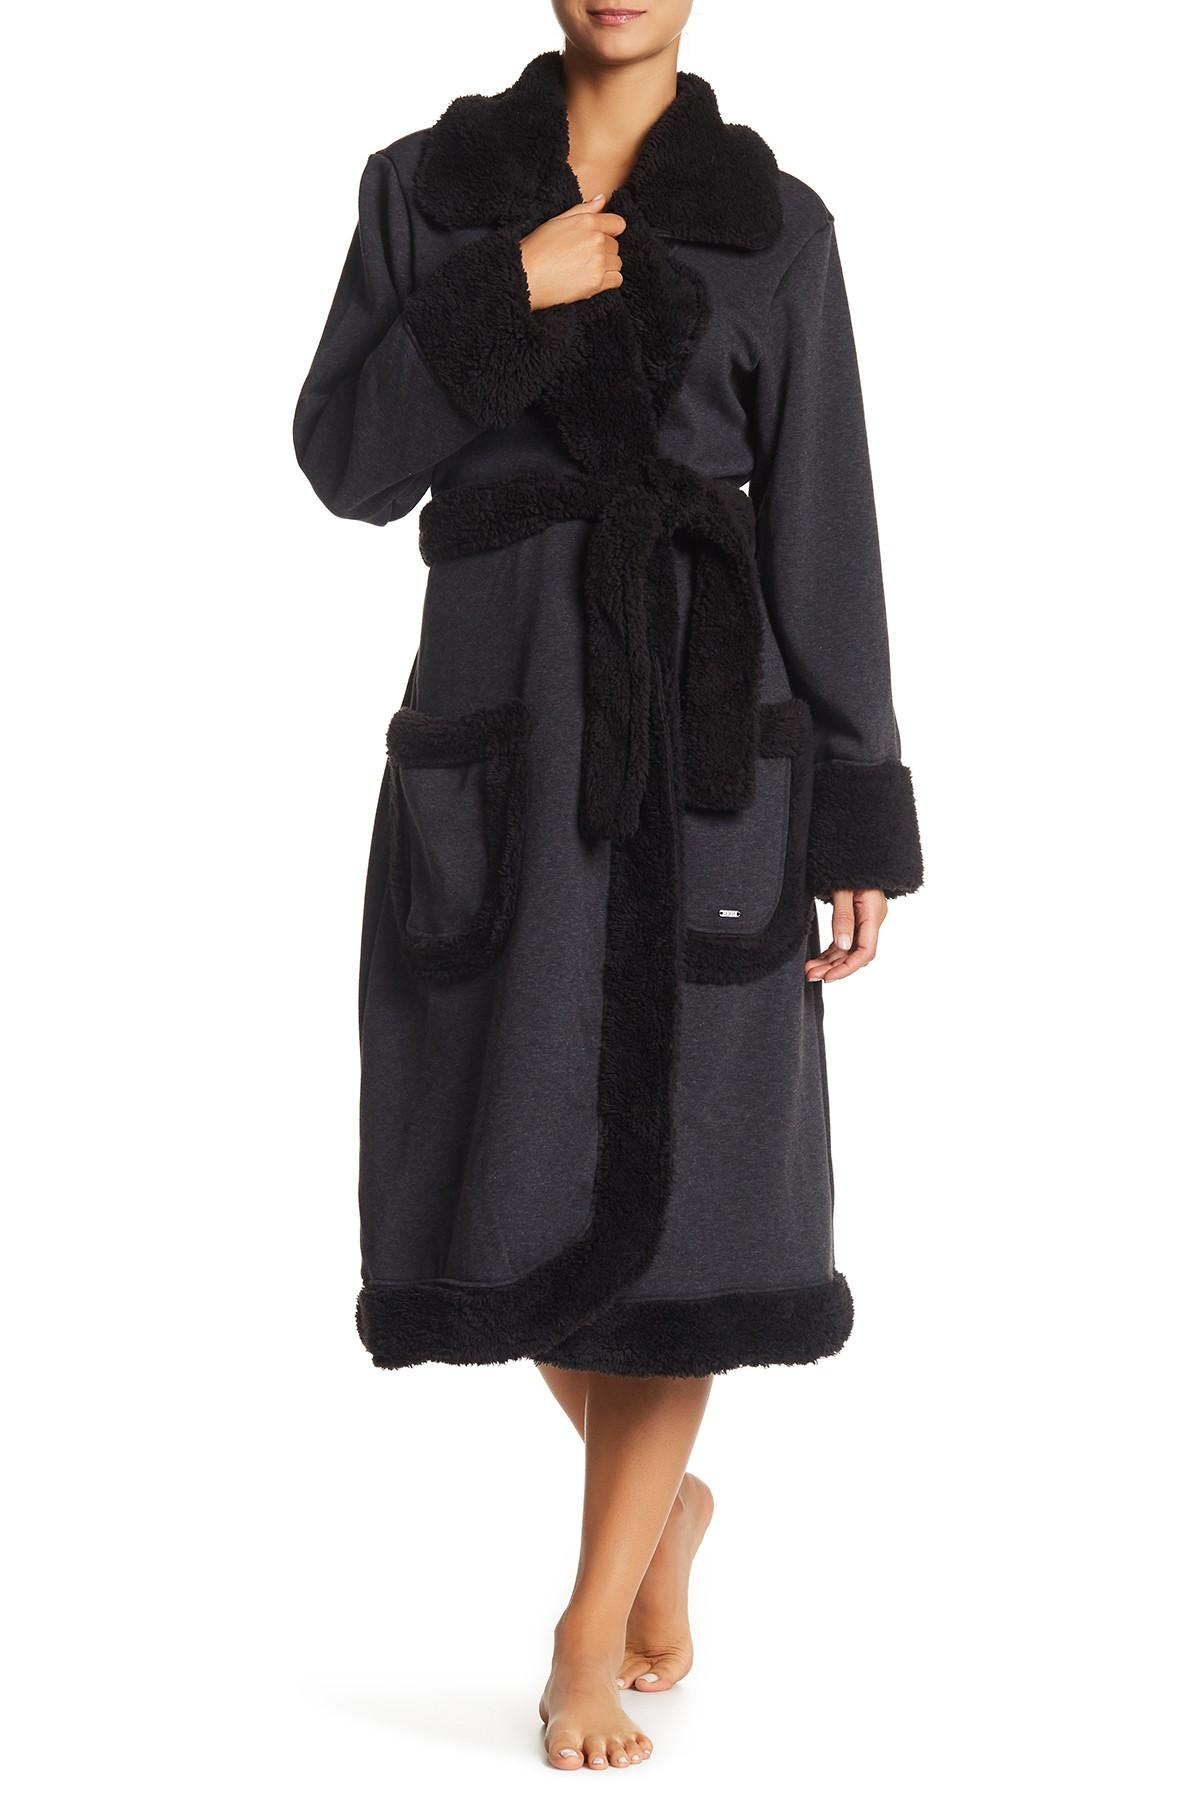 ugg duffield deluxe fleece robe in black lyst. Black Bedroom Furniture Sets. Home Design Ideas